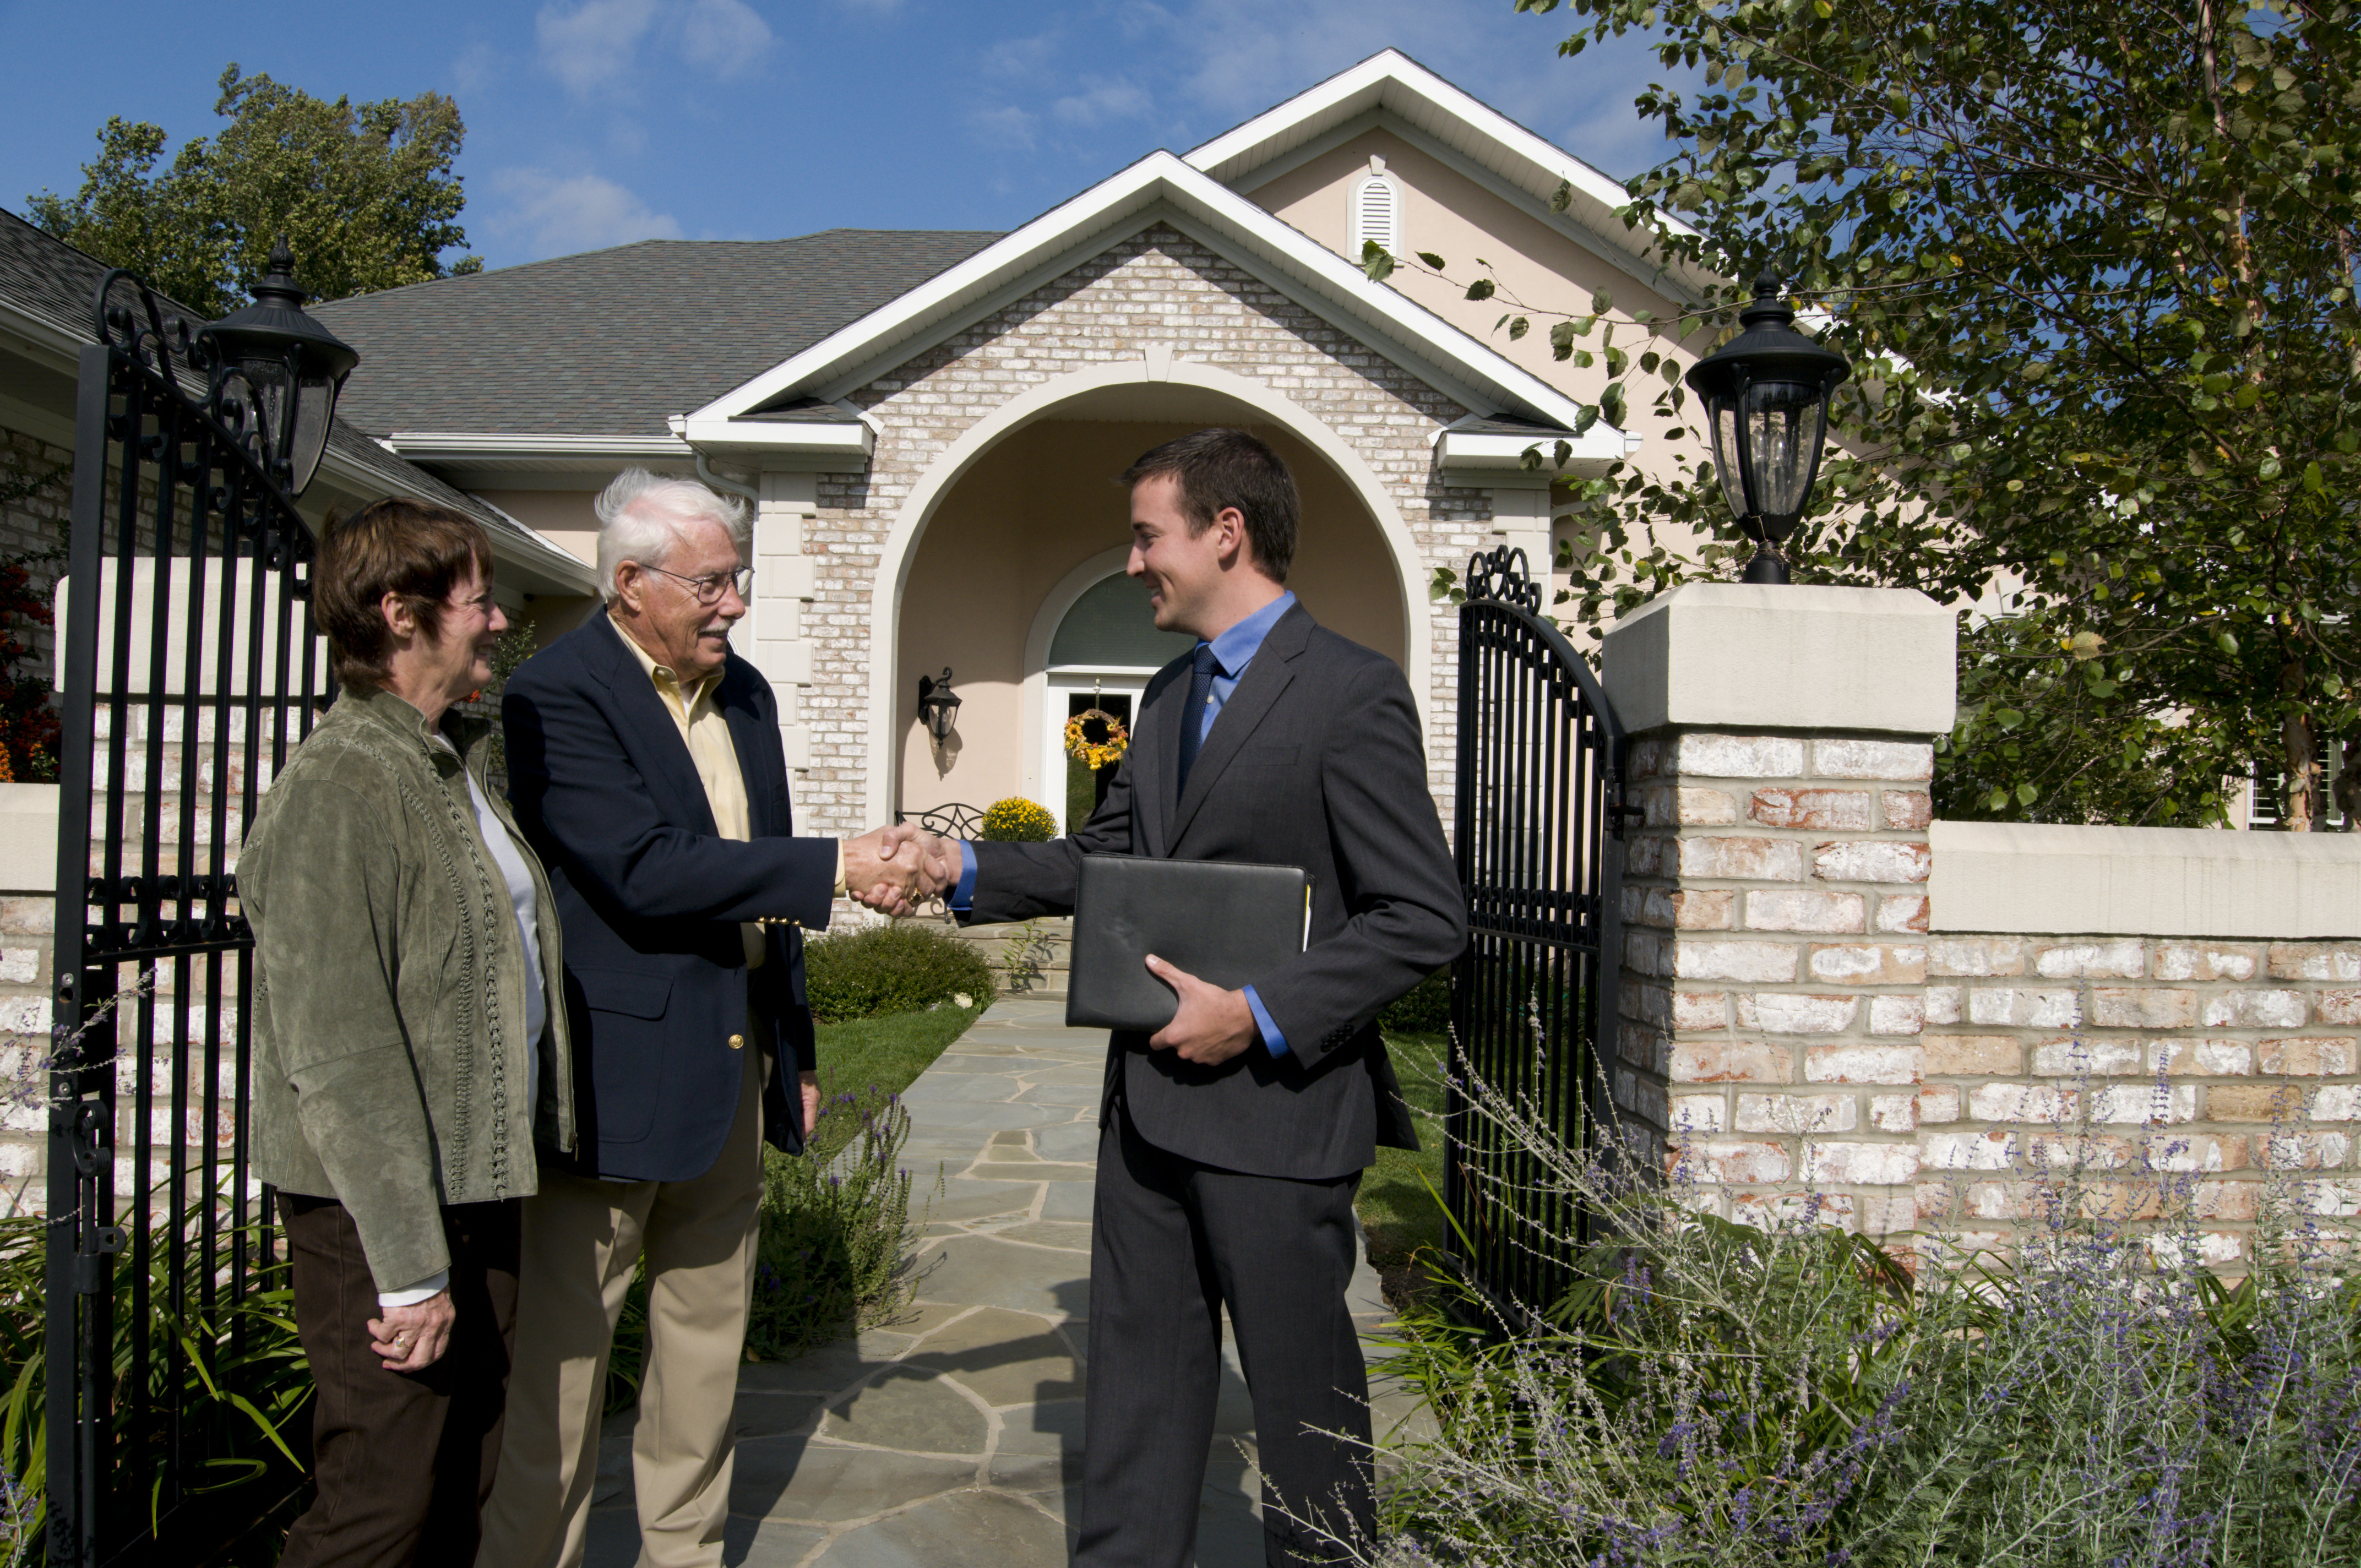 Busting Real Estate Myths: You NEED a 20% Down Payment to Purchase a Home